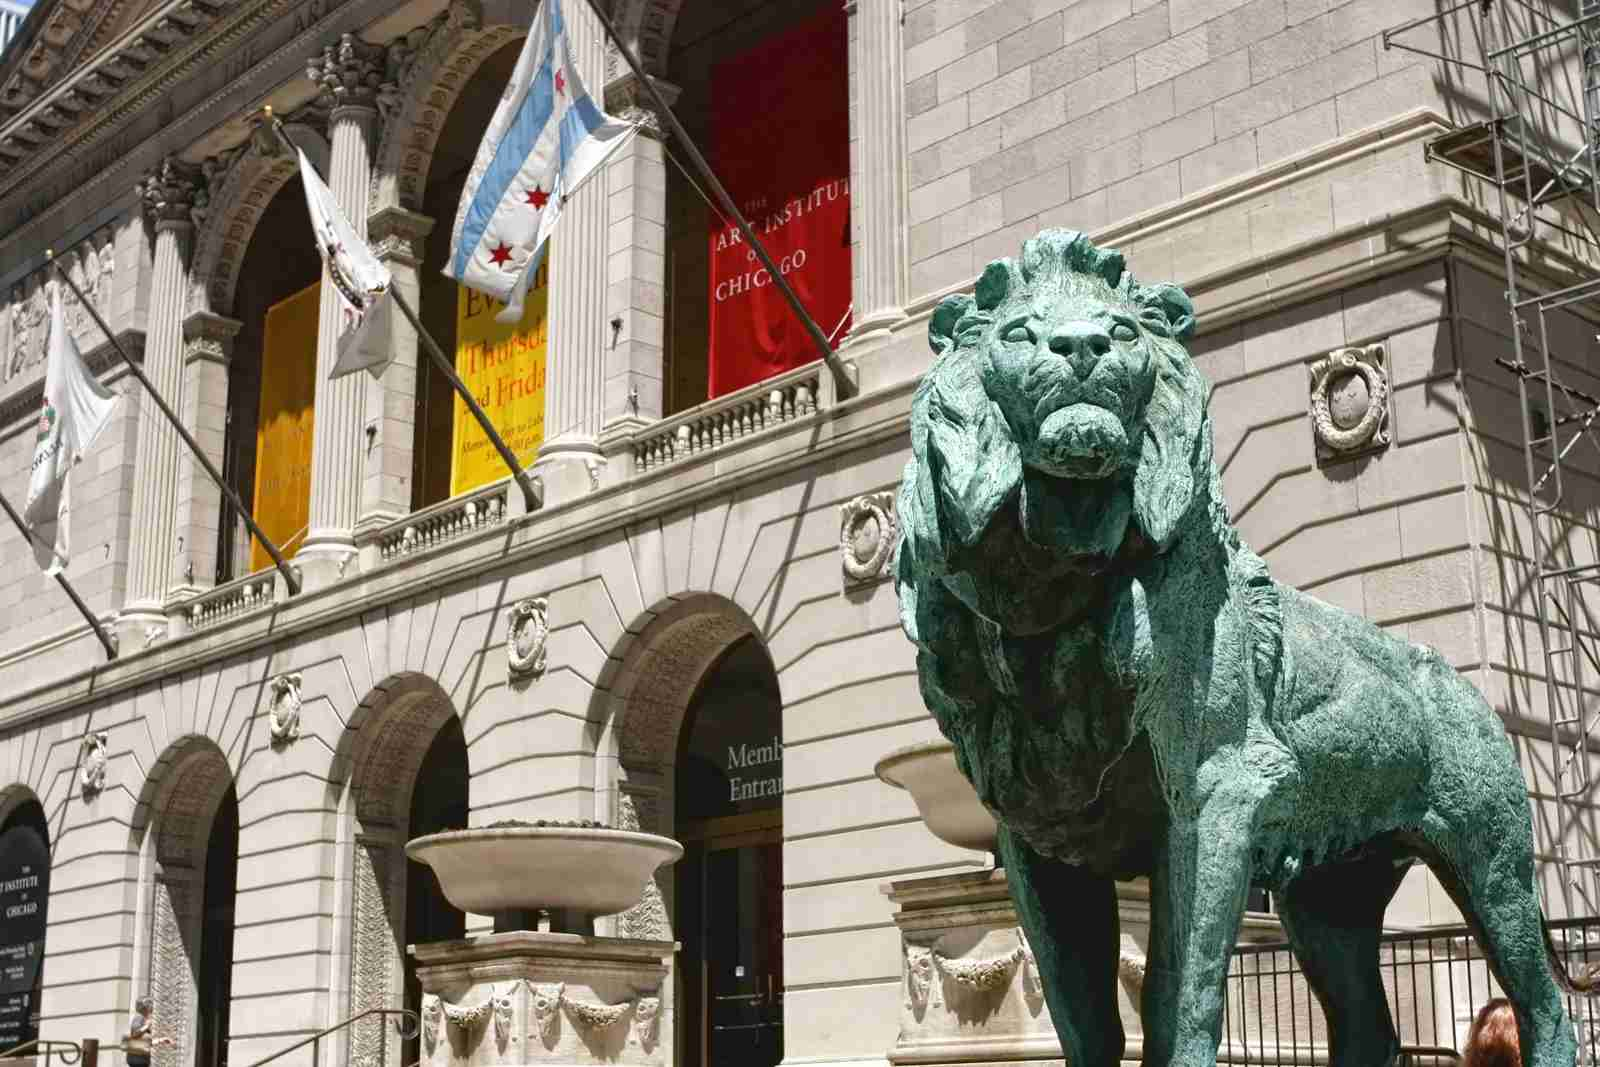 The Art Institute of Chicago Lions. (Photo by Christopherarndt / Getty Images)